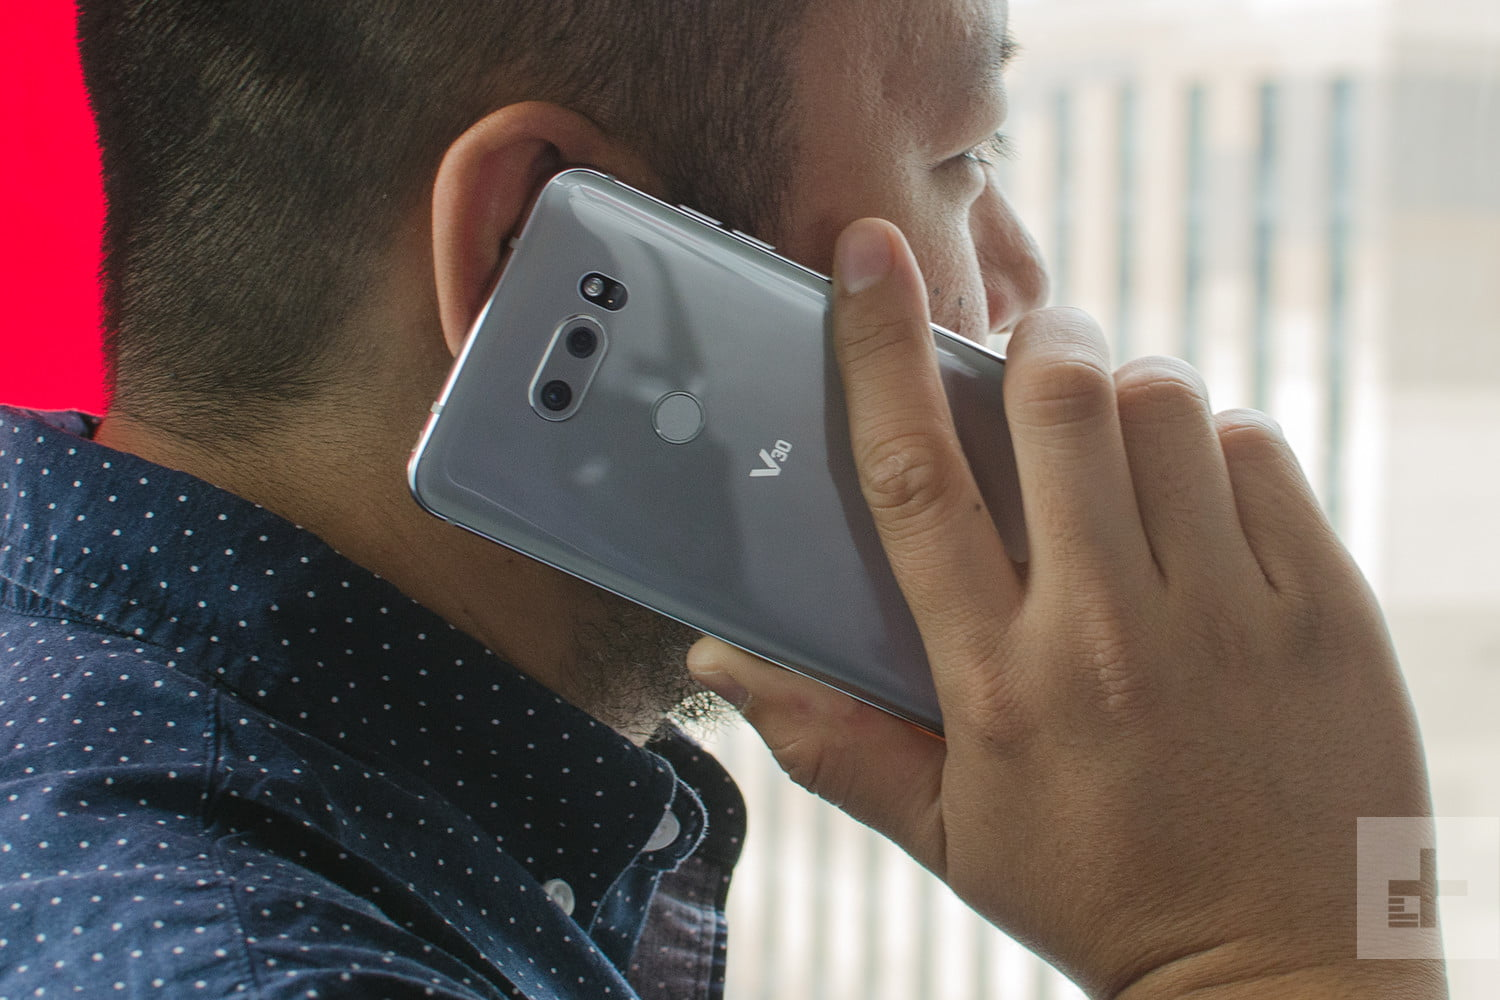 new concept 8da83 65b01 The Best LG V30 Cases For Your New Android Phone | Digital Trends